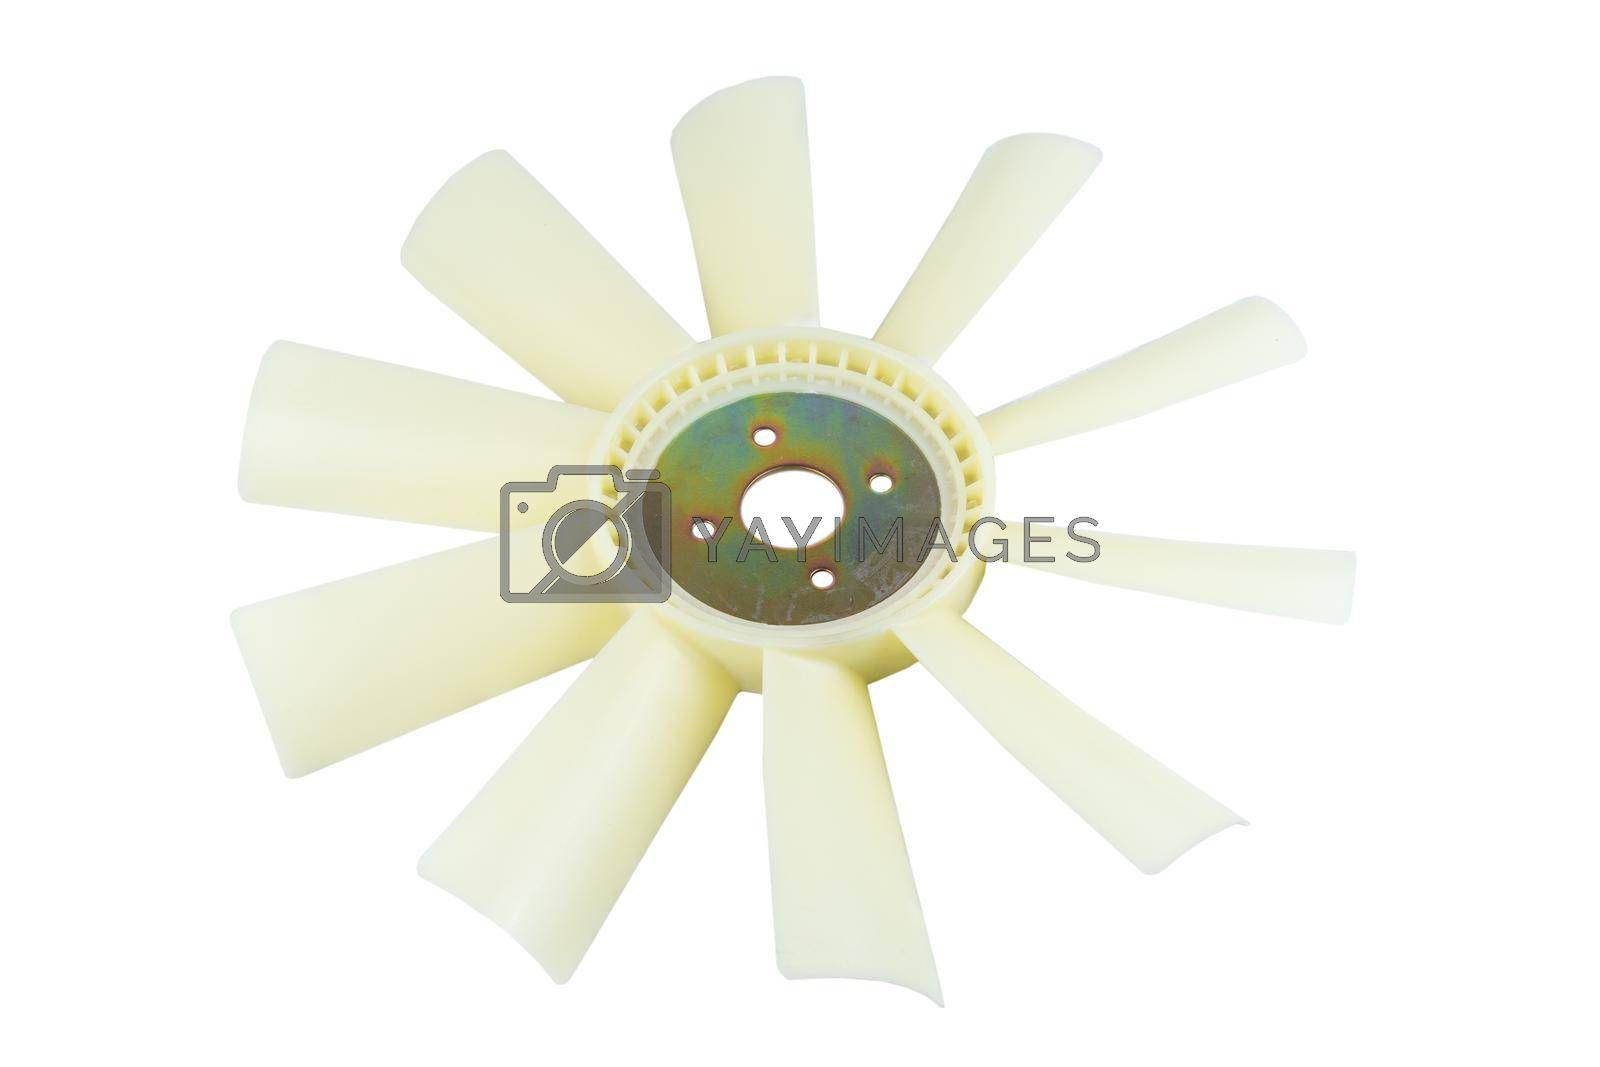 Royalty free image of new car radiator cooling fan on white background. by forester